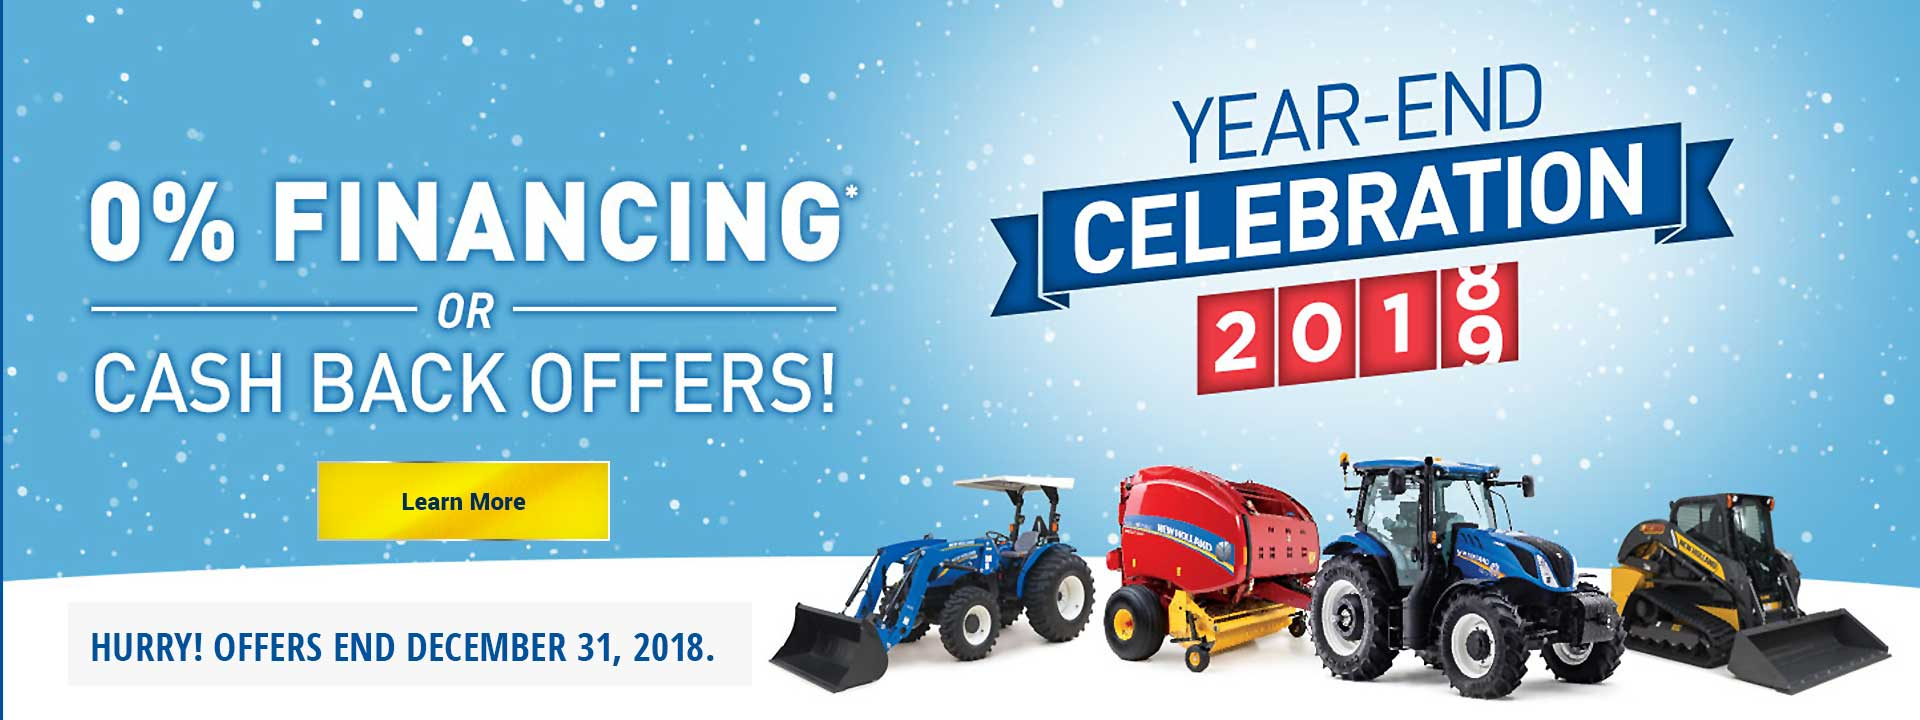 The end of 2018 is a perfect opportunity to save big. Take advantage of 0% FINANCING* or choose CASH BACK on current-year New Holland tractors and equipment. Hurry in today, because it's out with the old, in with the new during our Year-End Celebration.